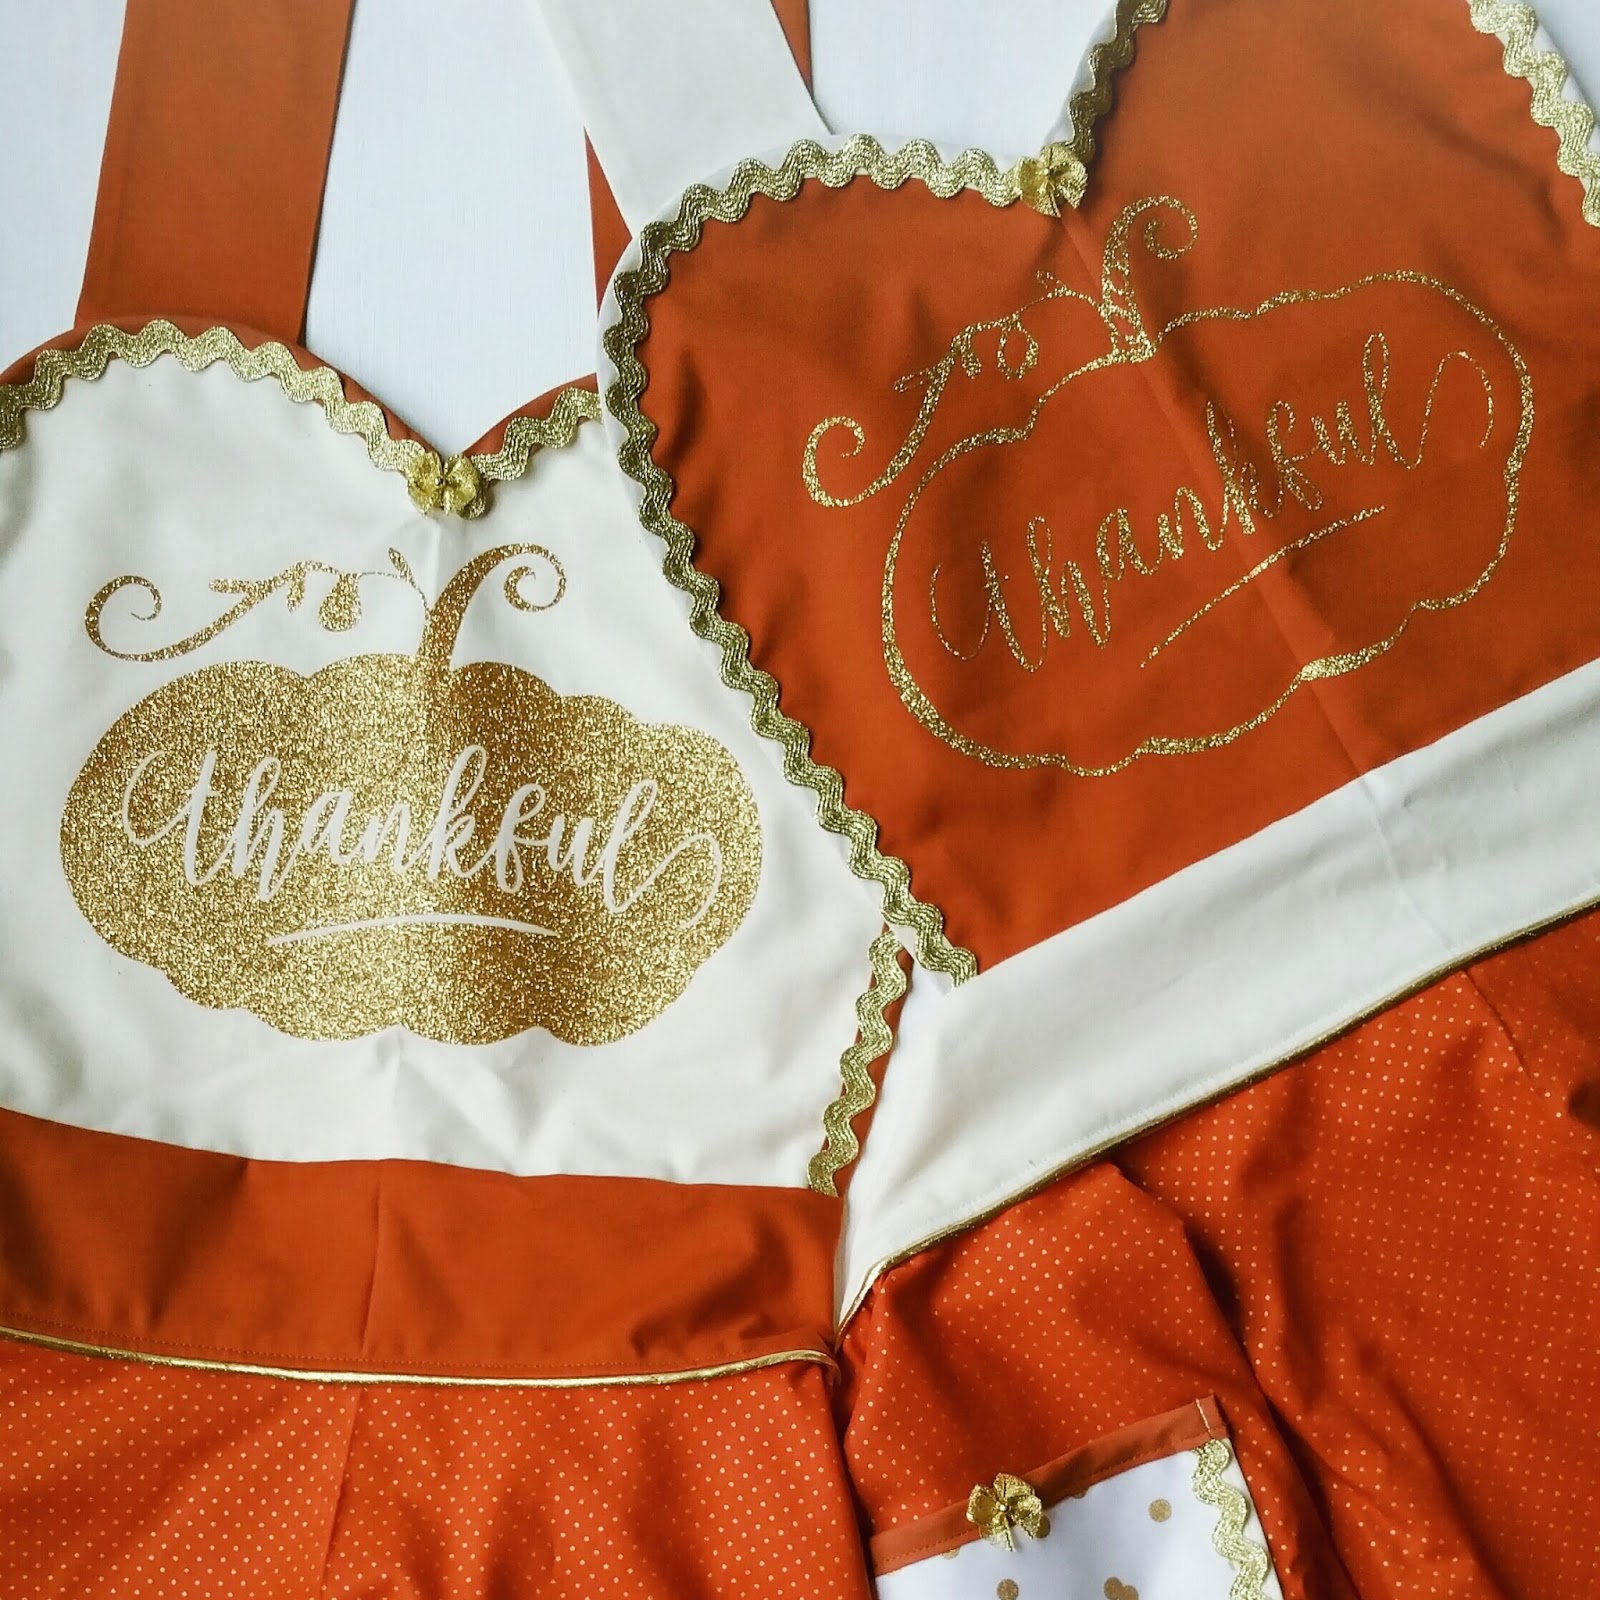 Thanksgiving Fabric Inspiration by Bambino Amore - the Apron Makers